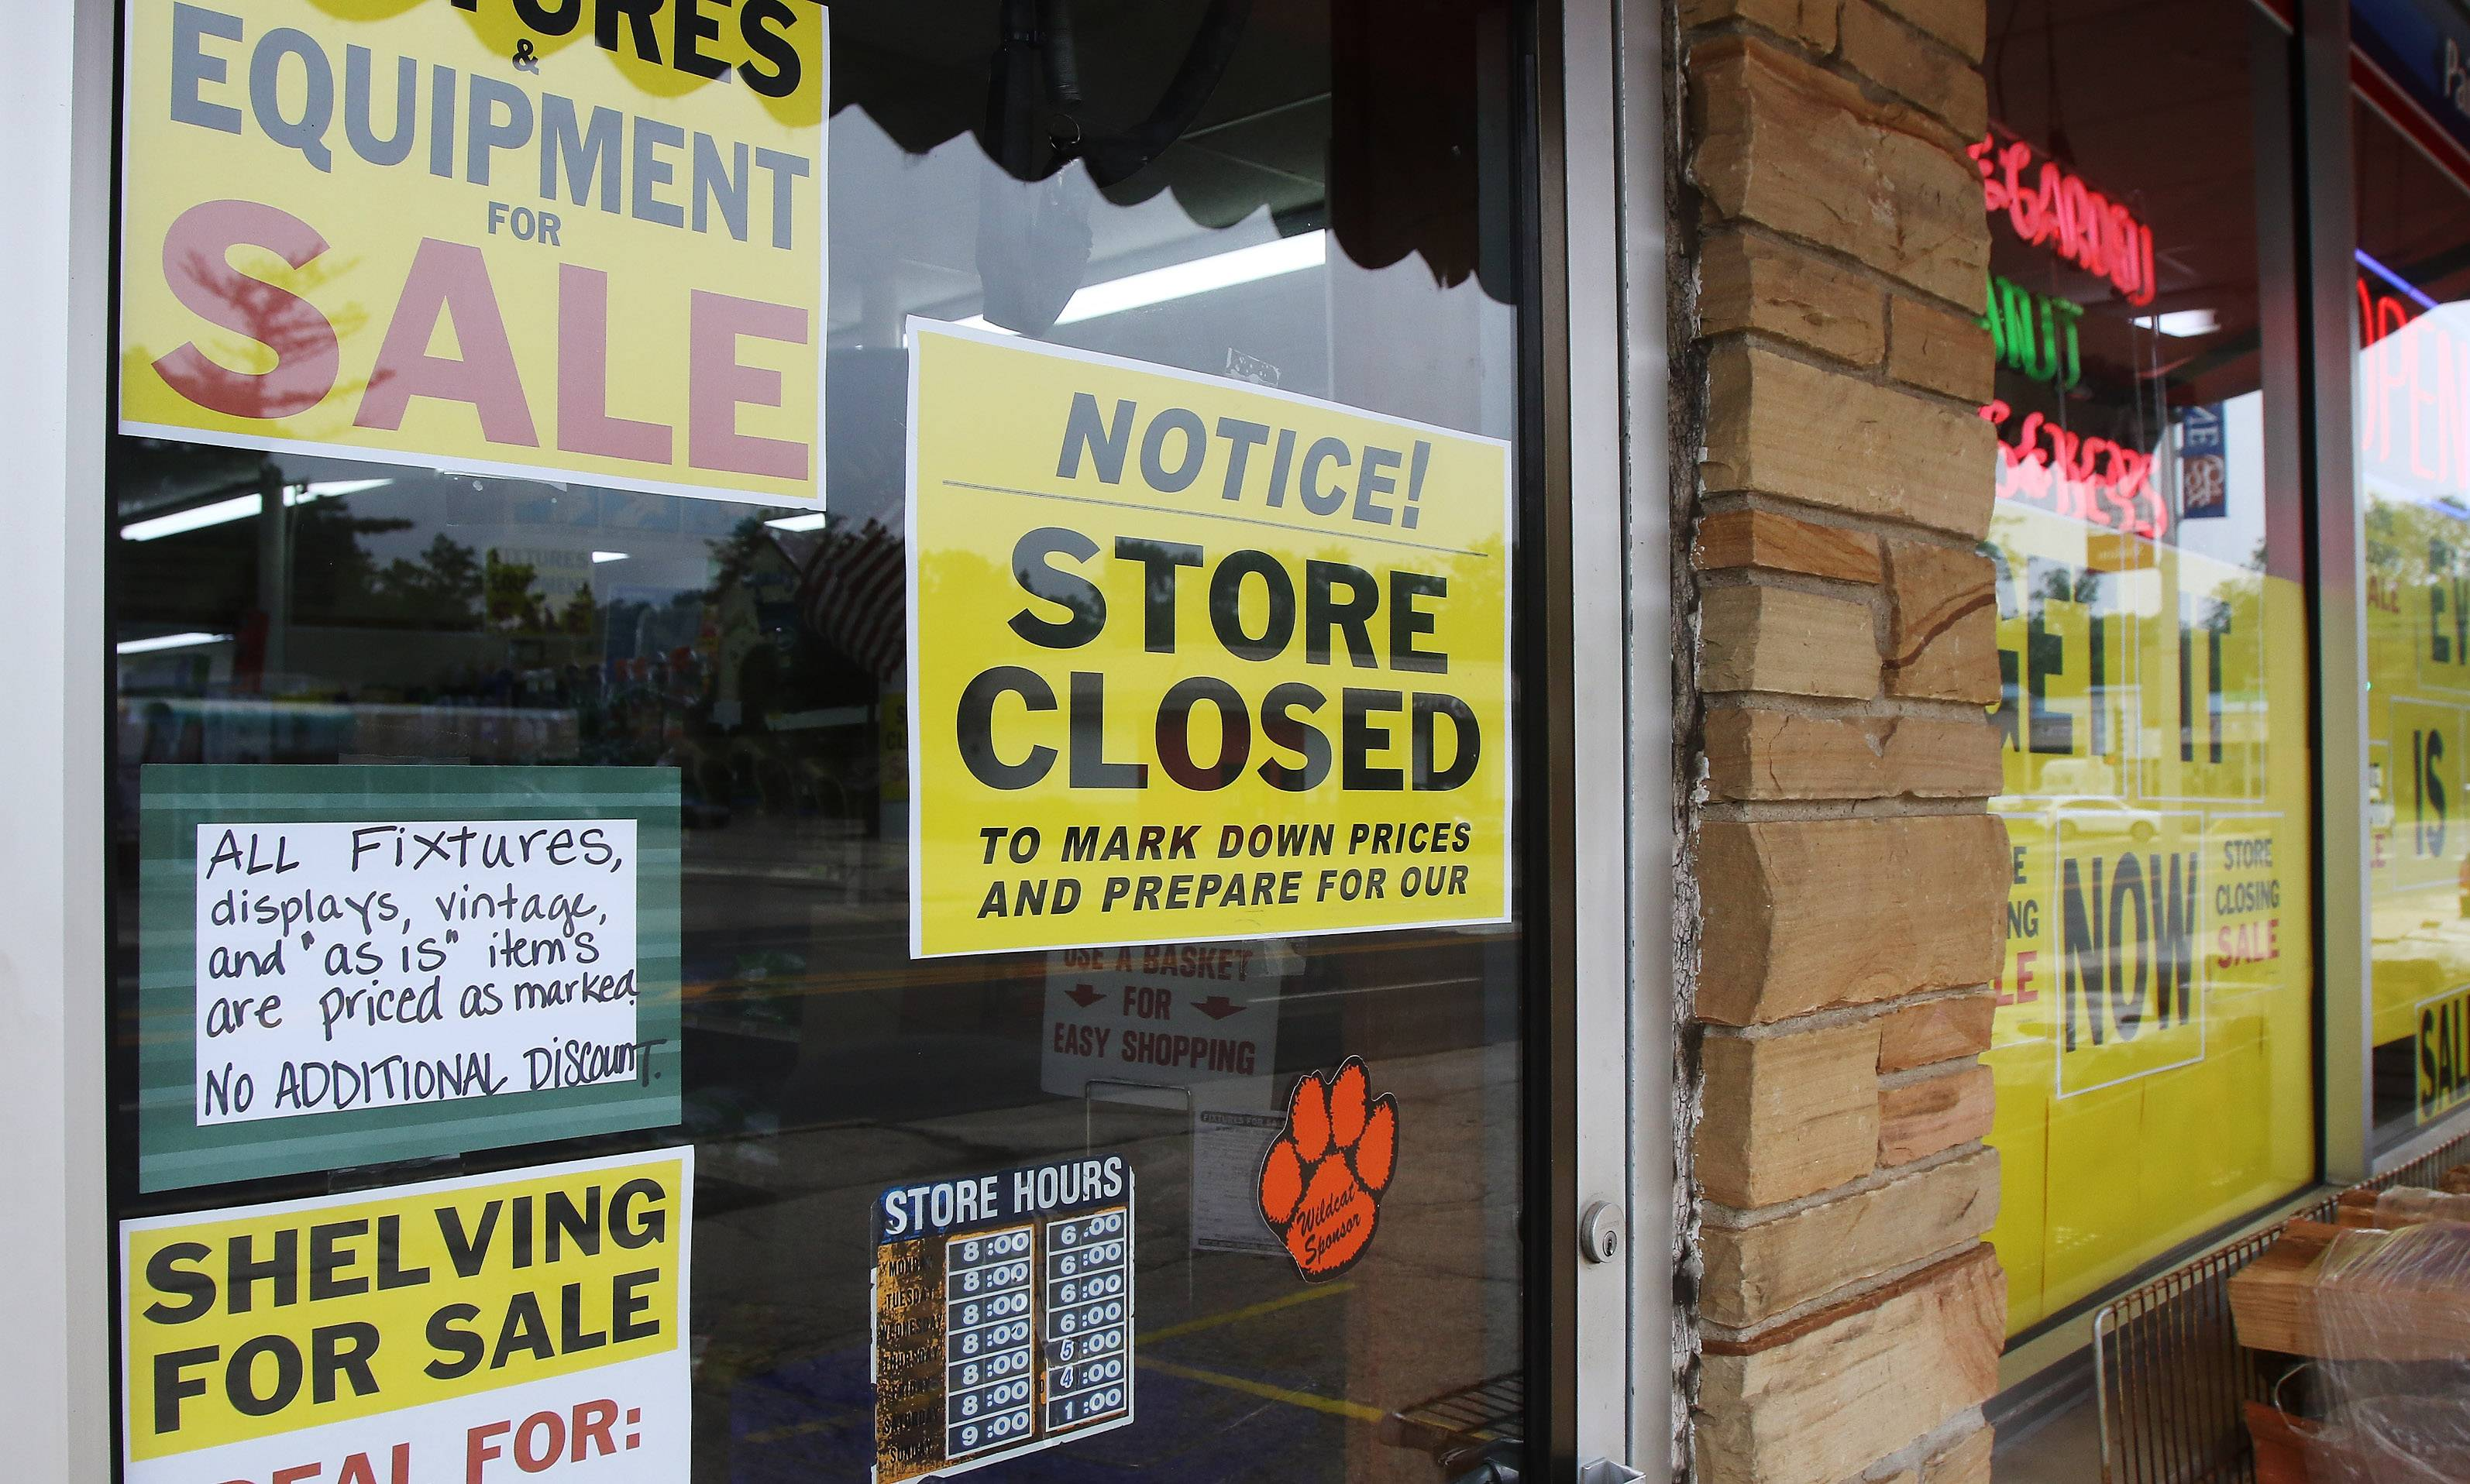 The stock of the Libertyville True Value hardware store is being liquidated and the store closed after 51 years in town.